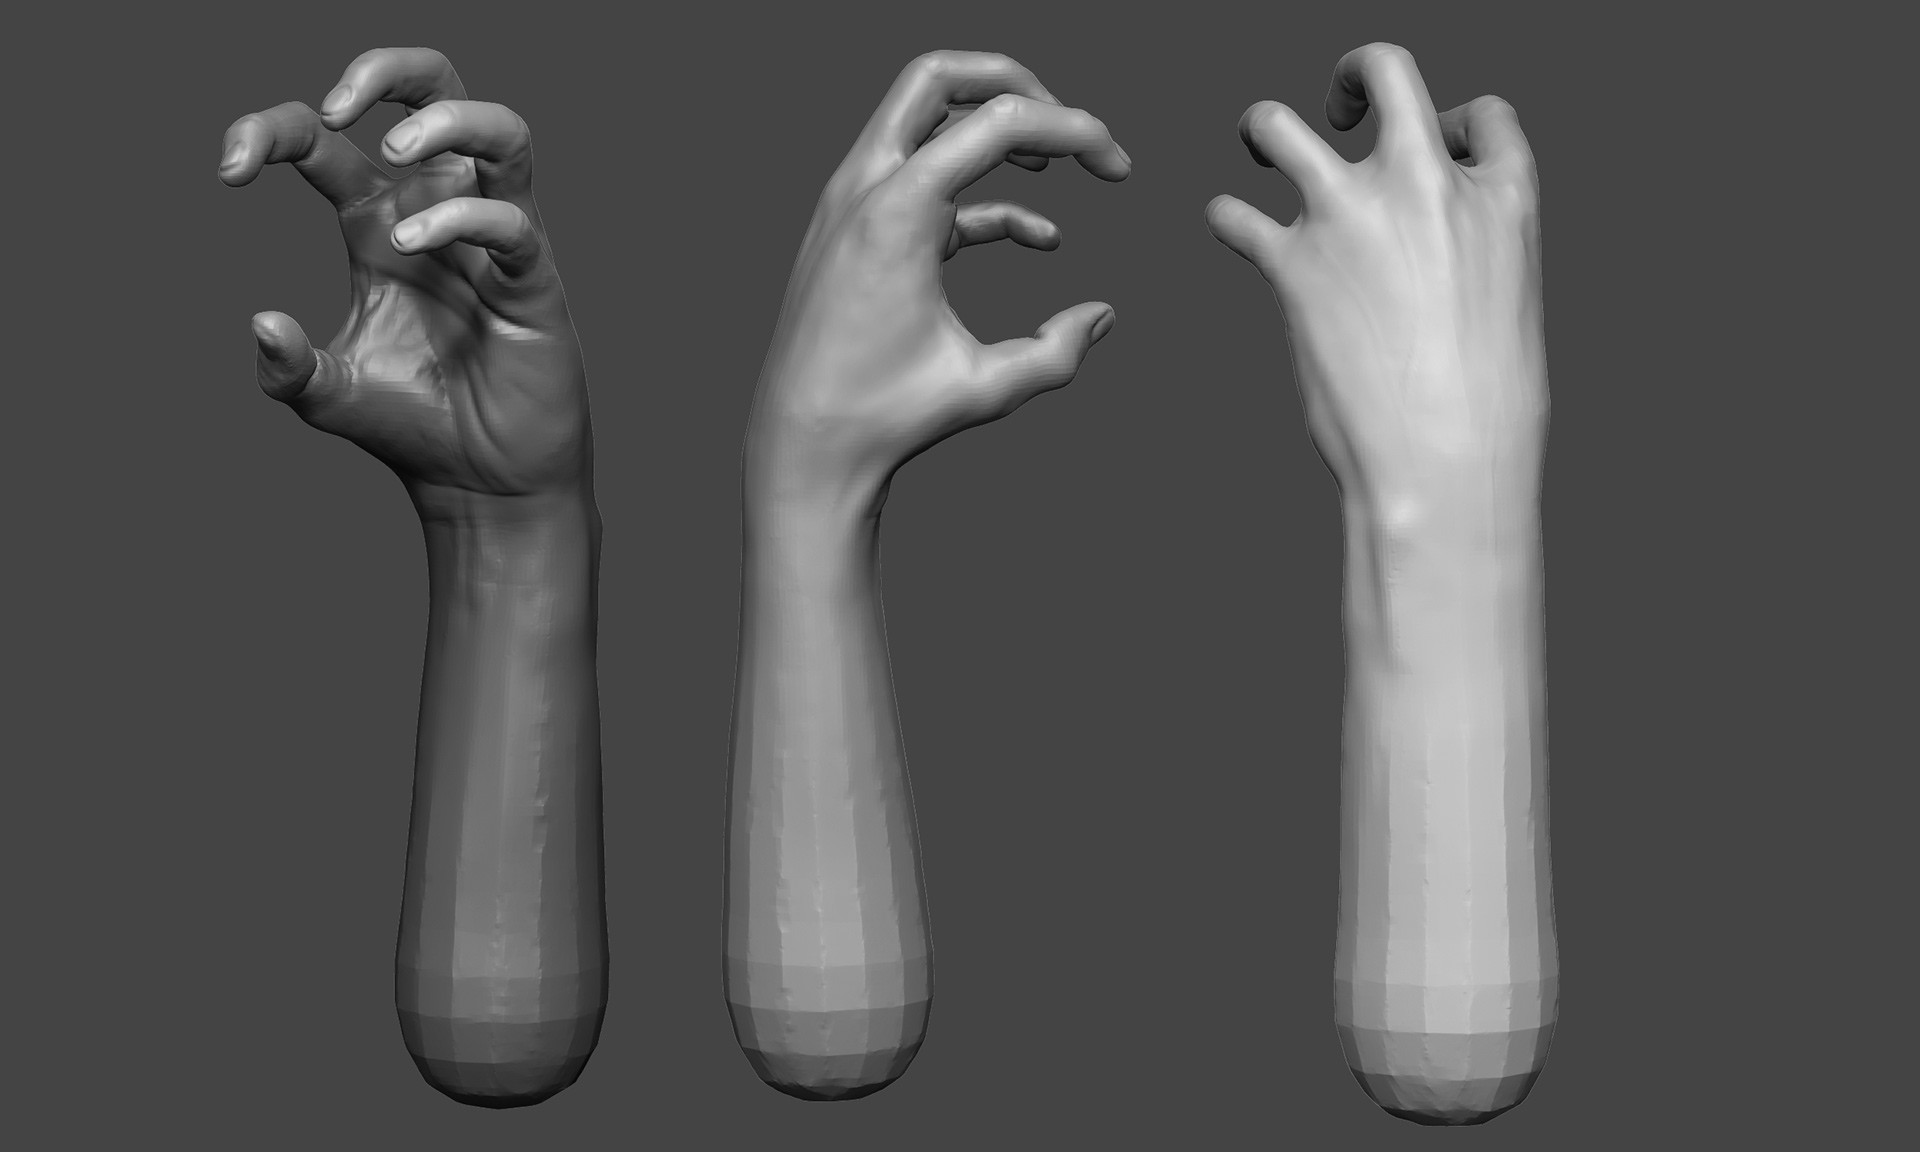 Chris Alford - Hand Studies